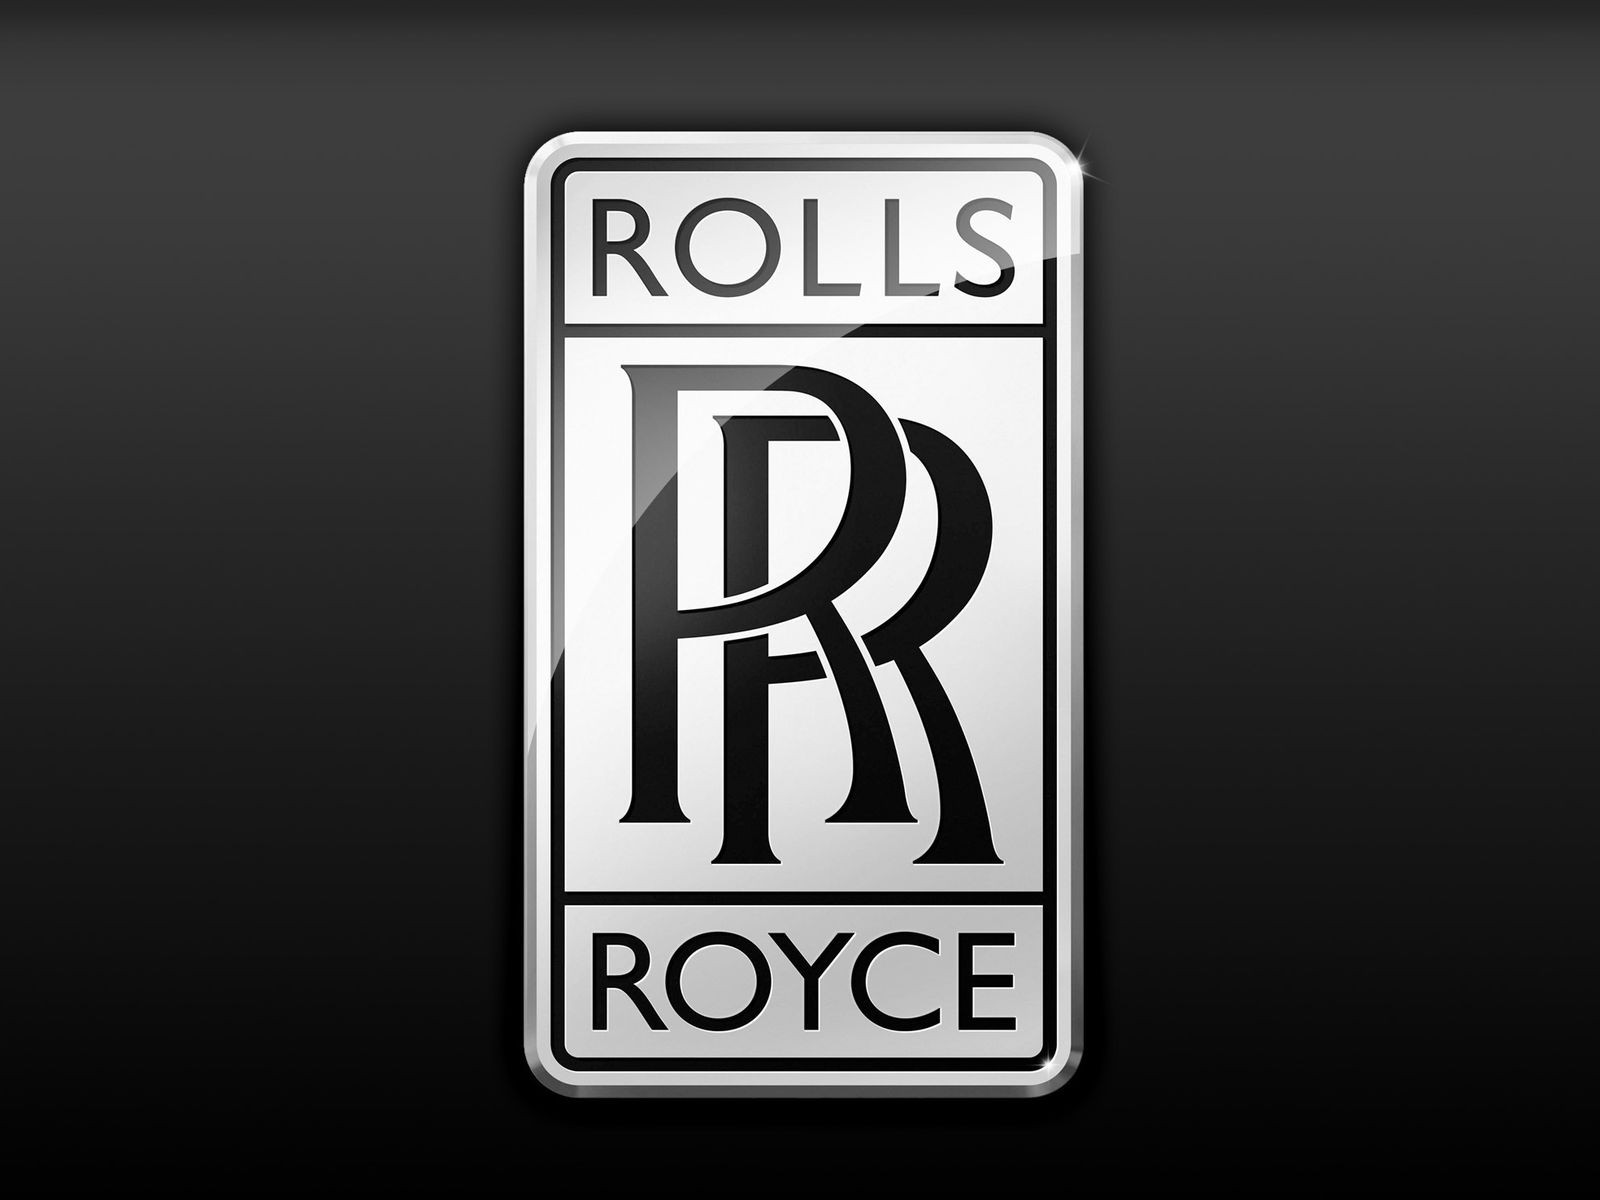 rolls-royce-logo-wallpaper.jpg